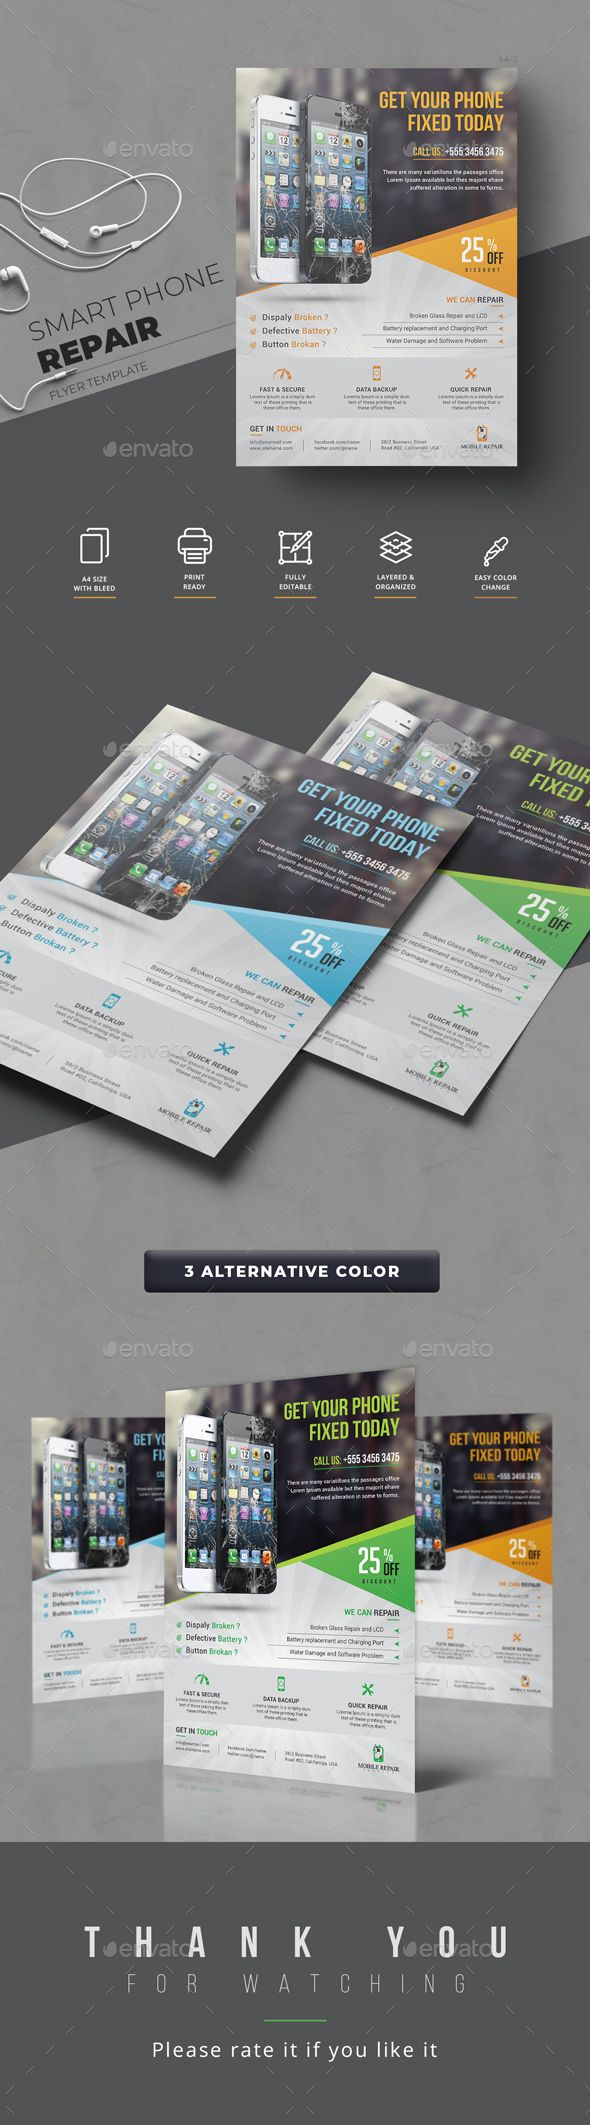 smartphone repair service flyer template psd quick and easy to